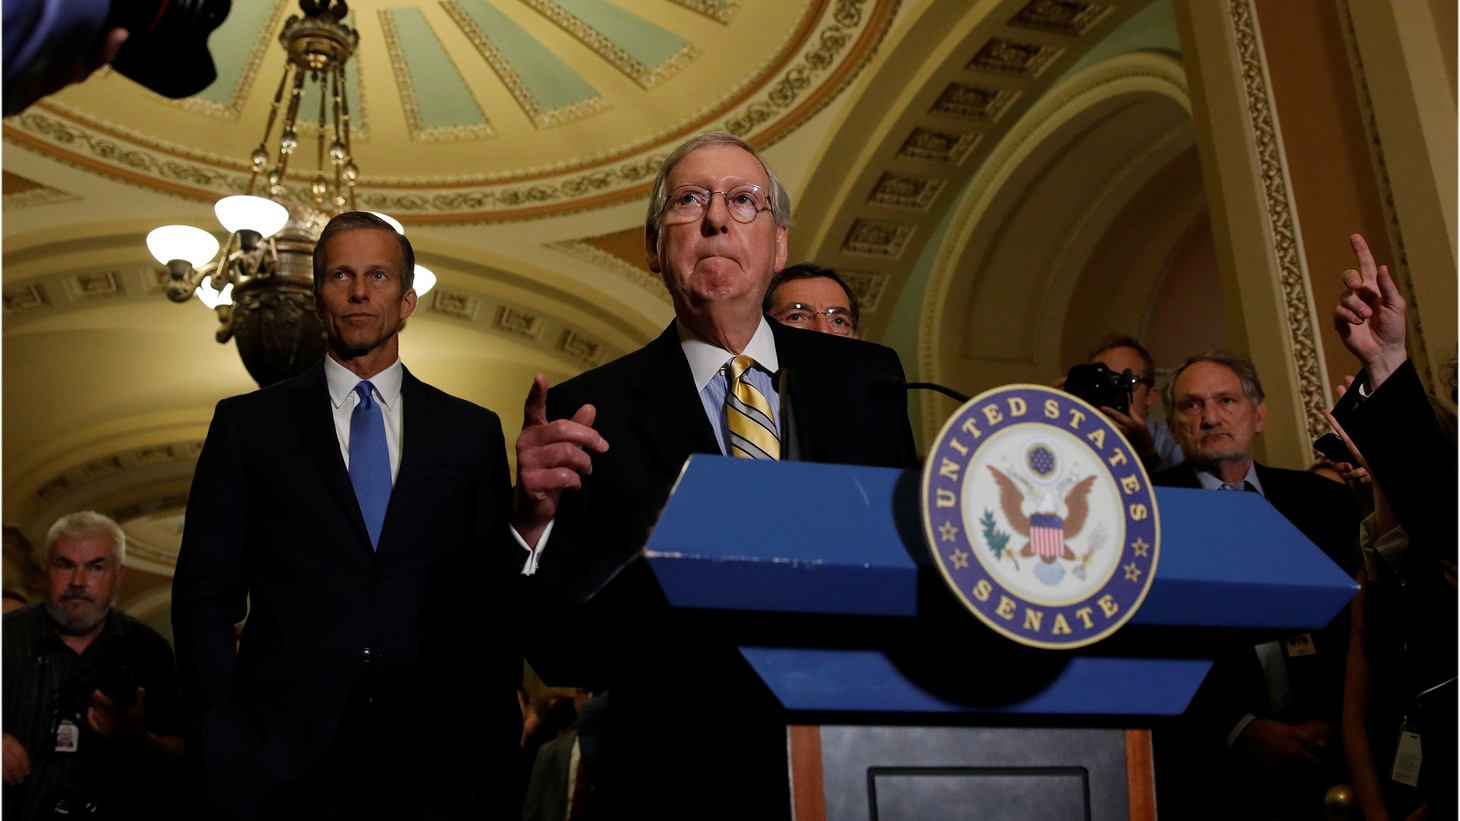 The nonpartisan Congressional Budget Office says the Senate GOP health care bill would leave 22 million more Americans without health insurance by the year 2026. The big question is just how many Republicans are willing to vote for the bill.